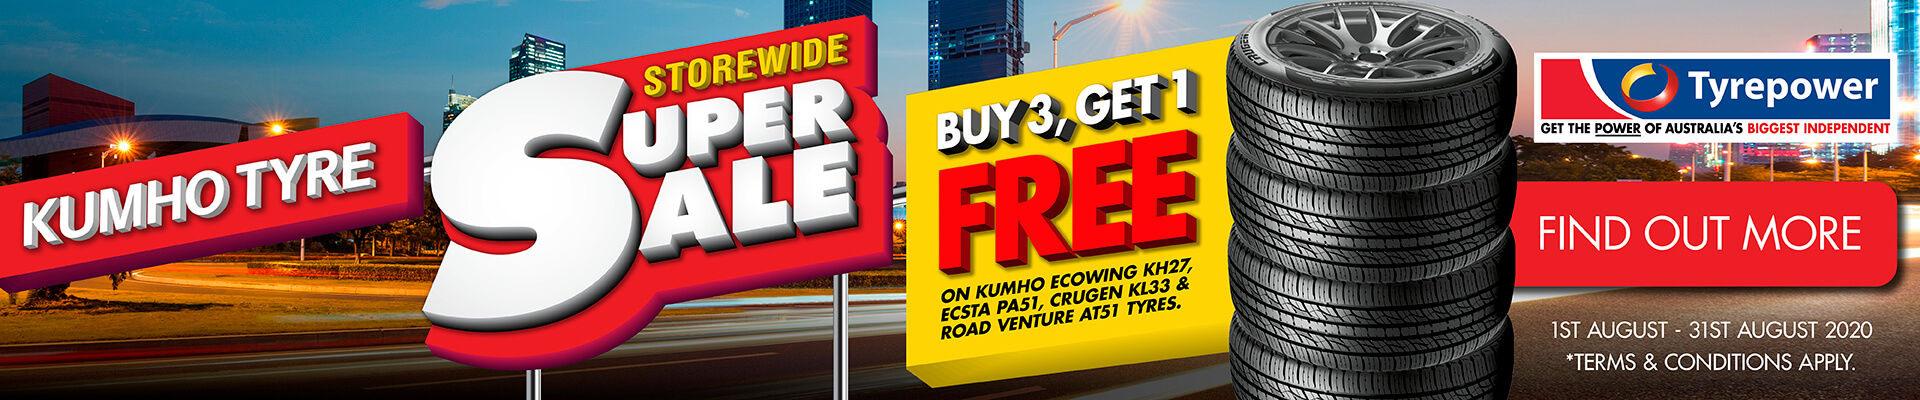 Kumho Tyres - Buy 3 Get 1 Free Primary Special